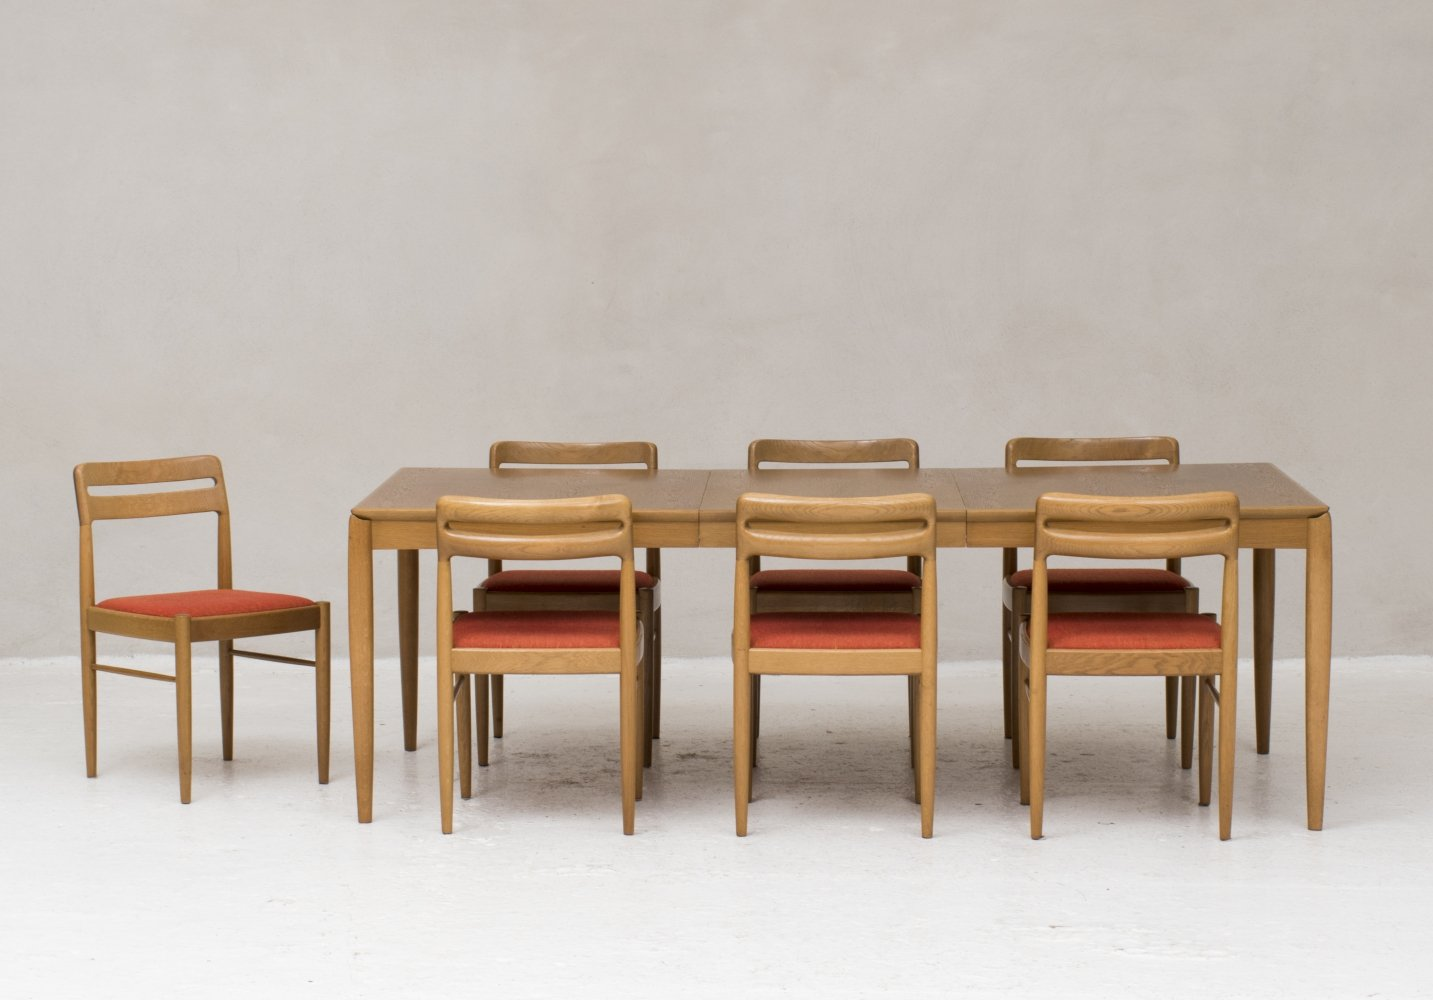 Extendable dining table with 7 matching chairs designed by H.W. Klein for Bramin